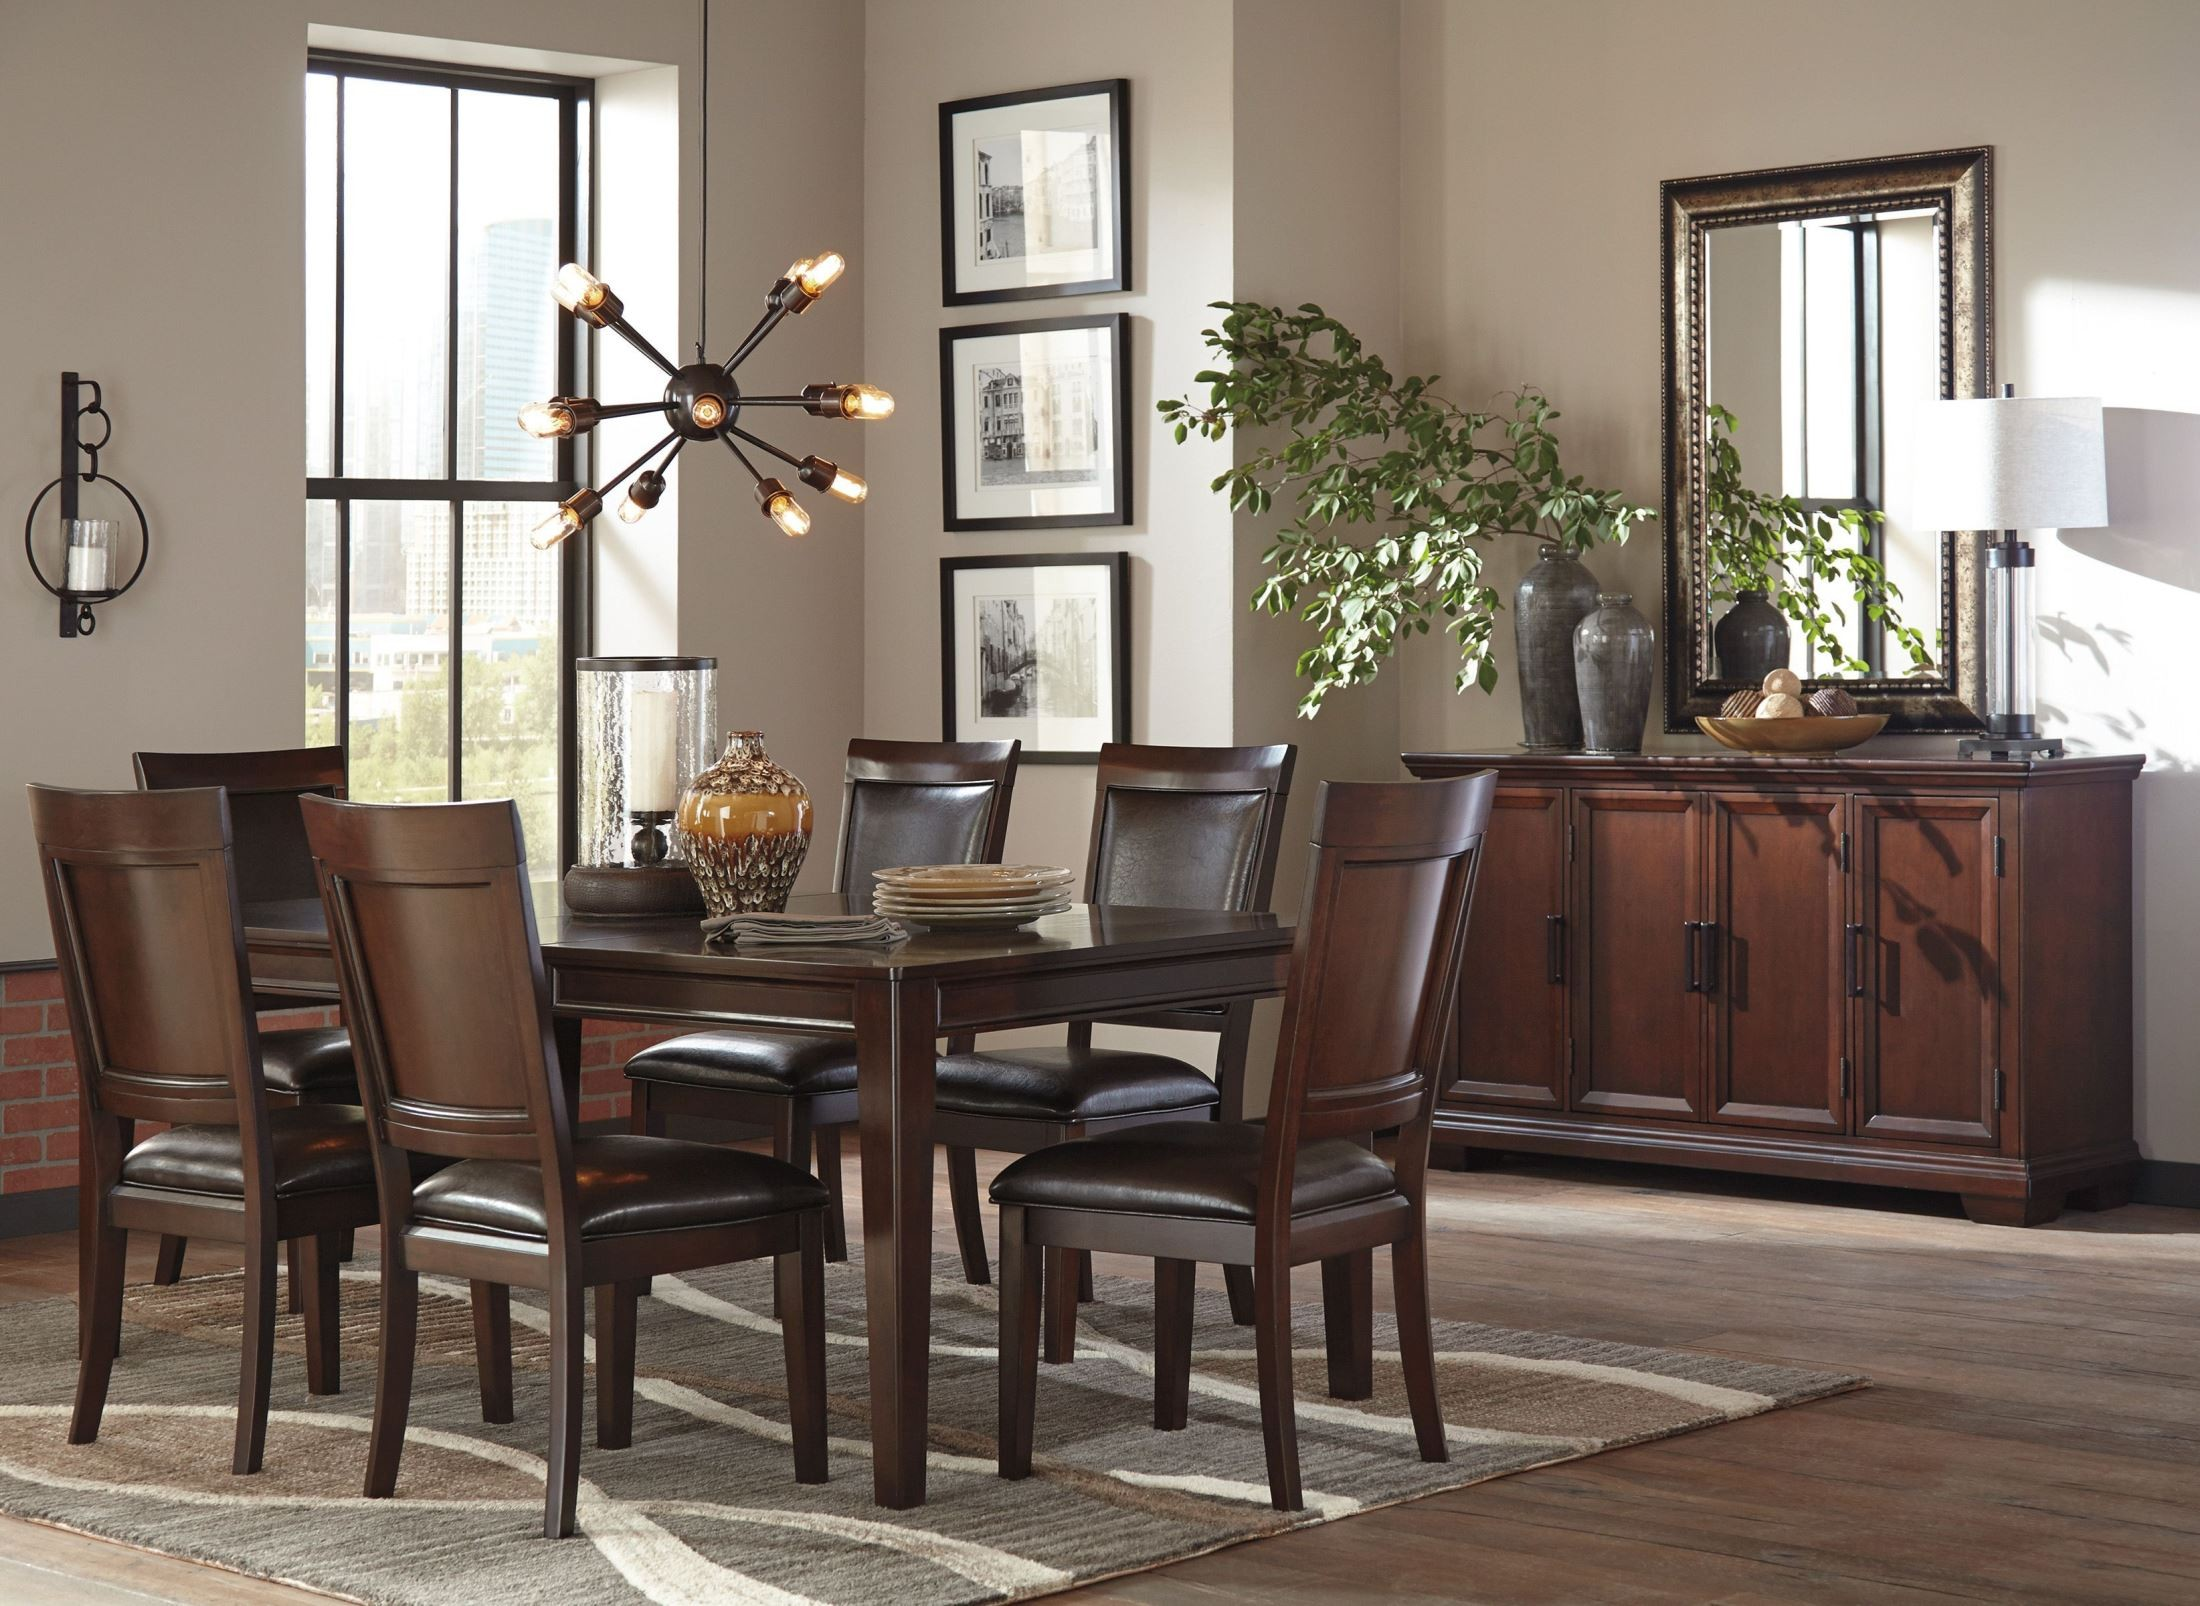 Shadyn brown rectangular extendable dining room set d471 for Brown dining room set